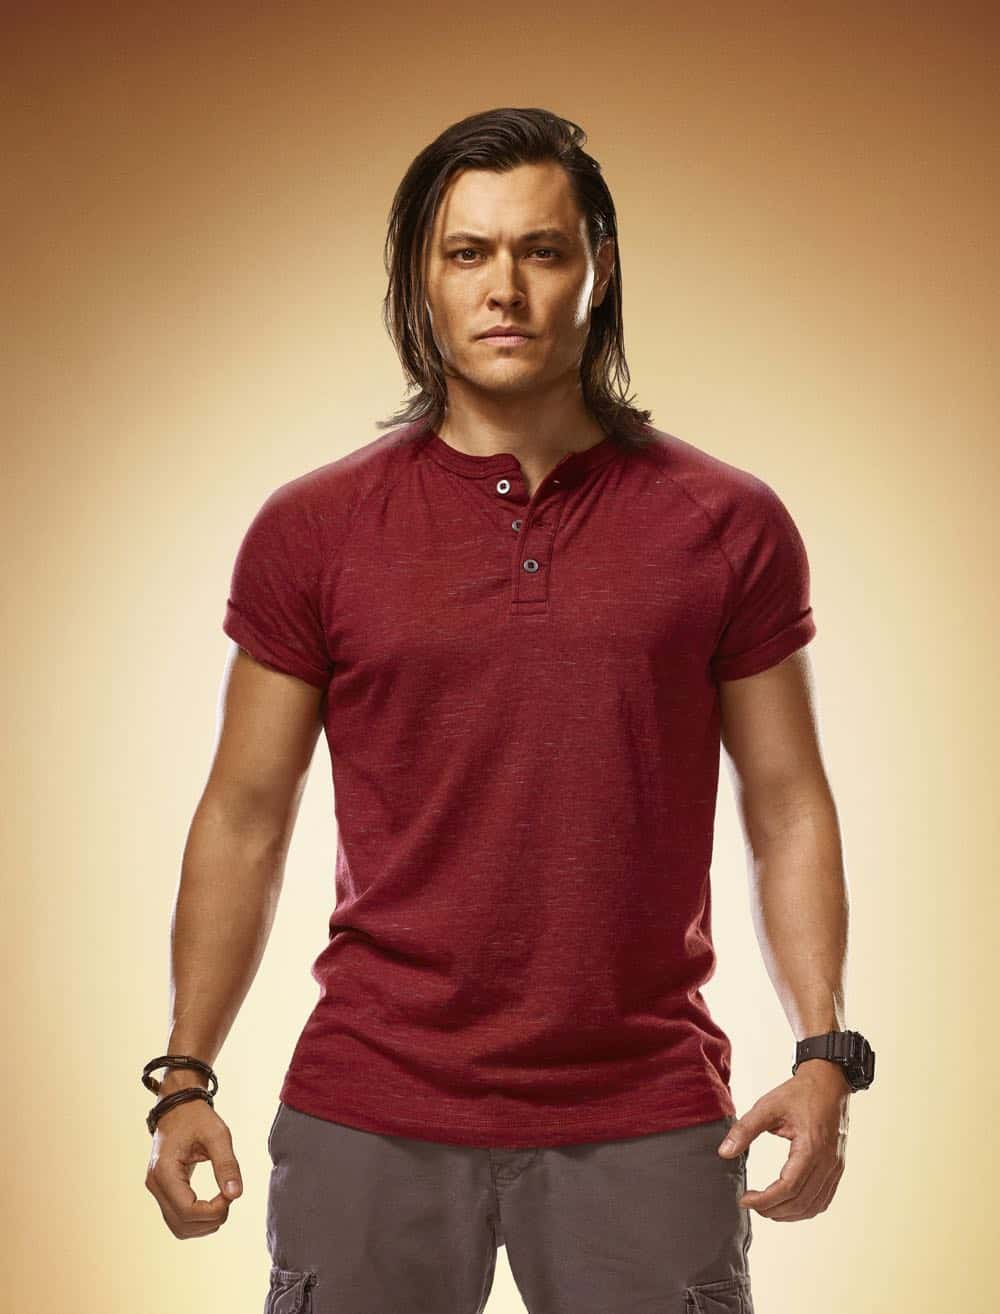 THE GIFTED:  Blair Redford as Thunderbird/John Proudstar in Season Two of THE GIFTED airing Tuesday, Sept. 25 (8:00-9:00 PM ET/PT) on FOX. ©2018 Fox Broadcasting Co. Cr:  Justin Stephens/FOX